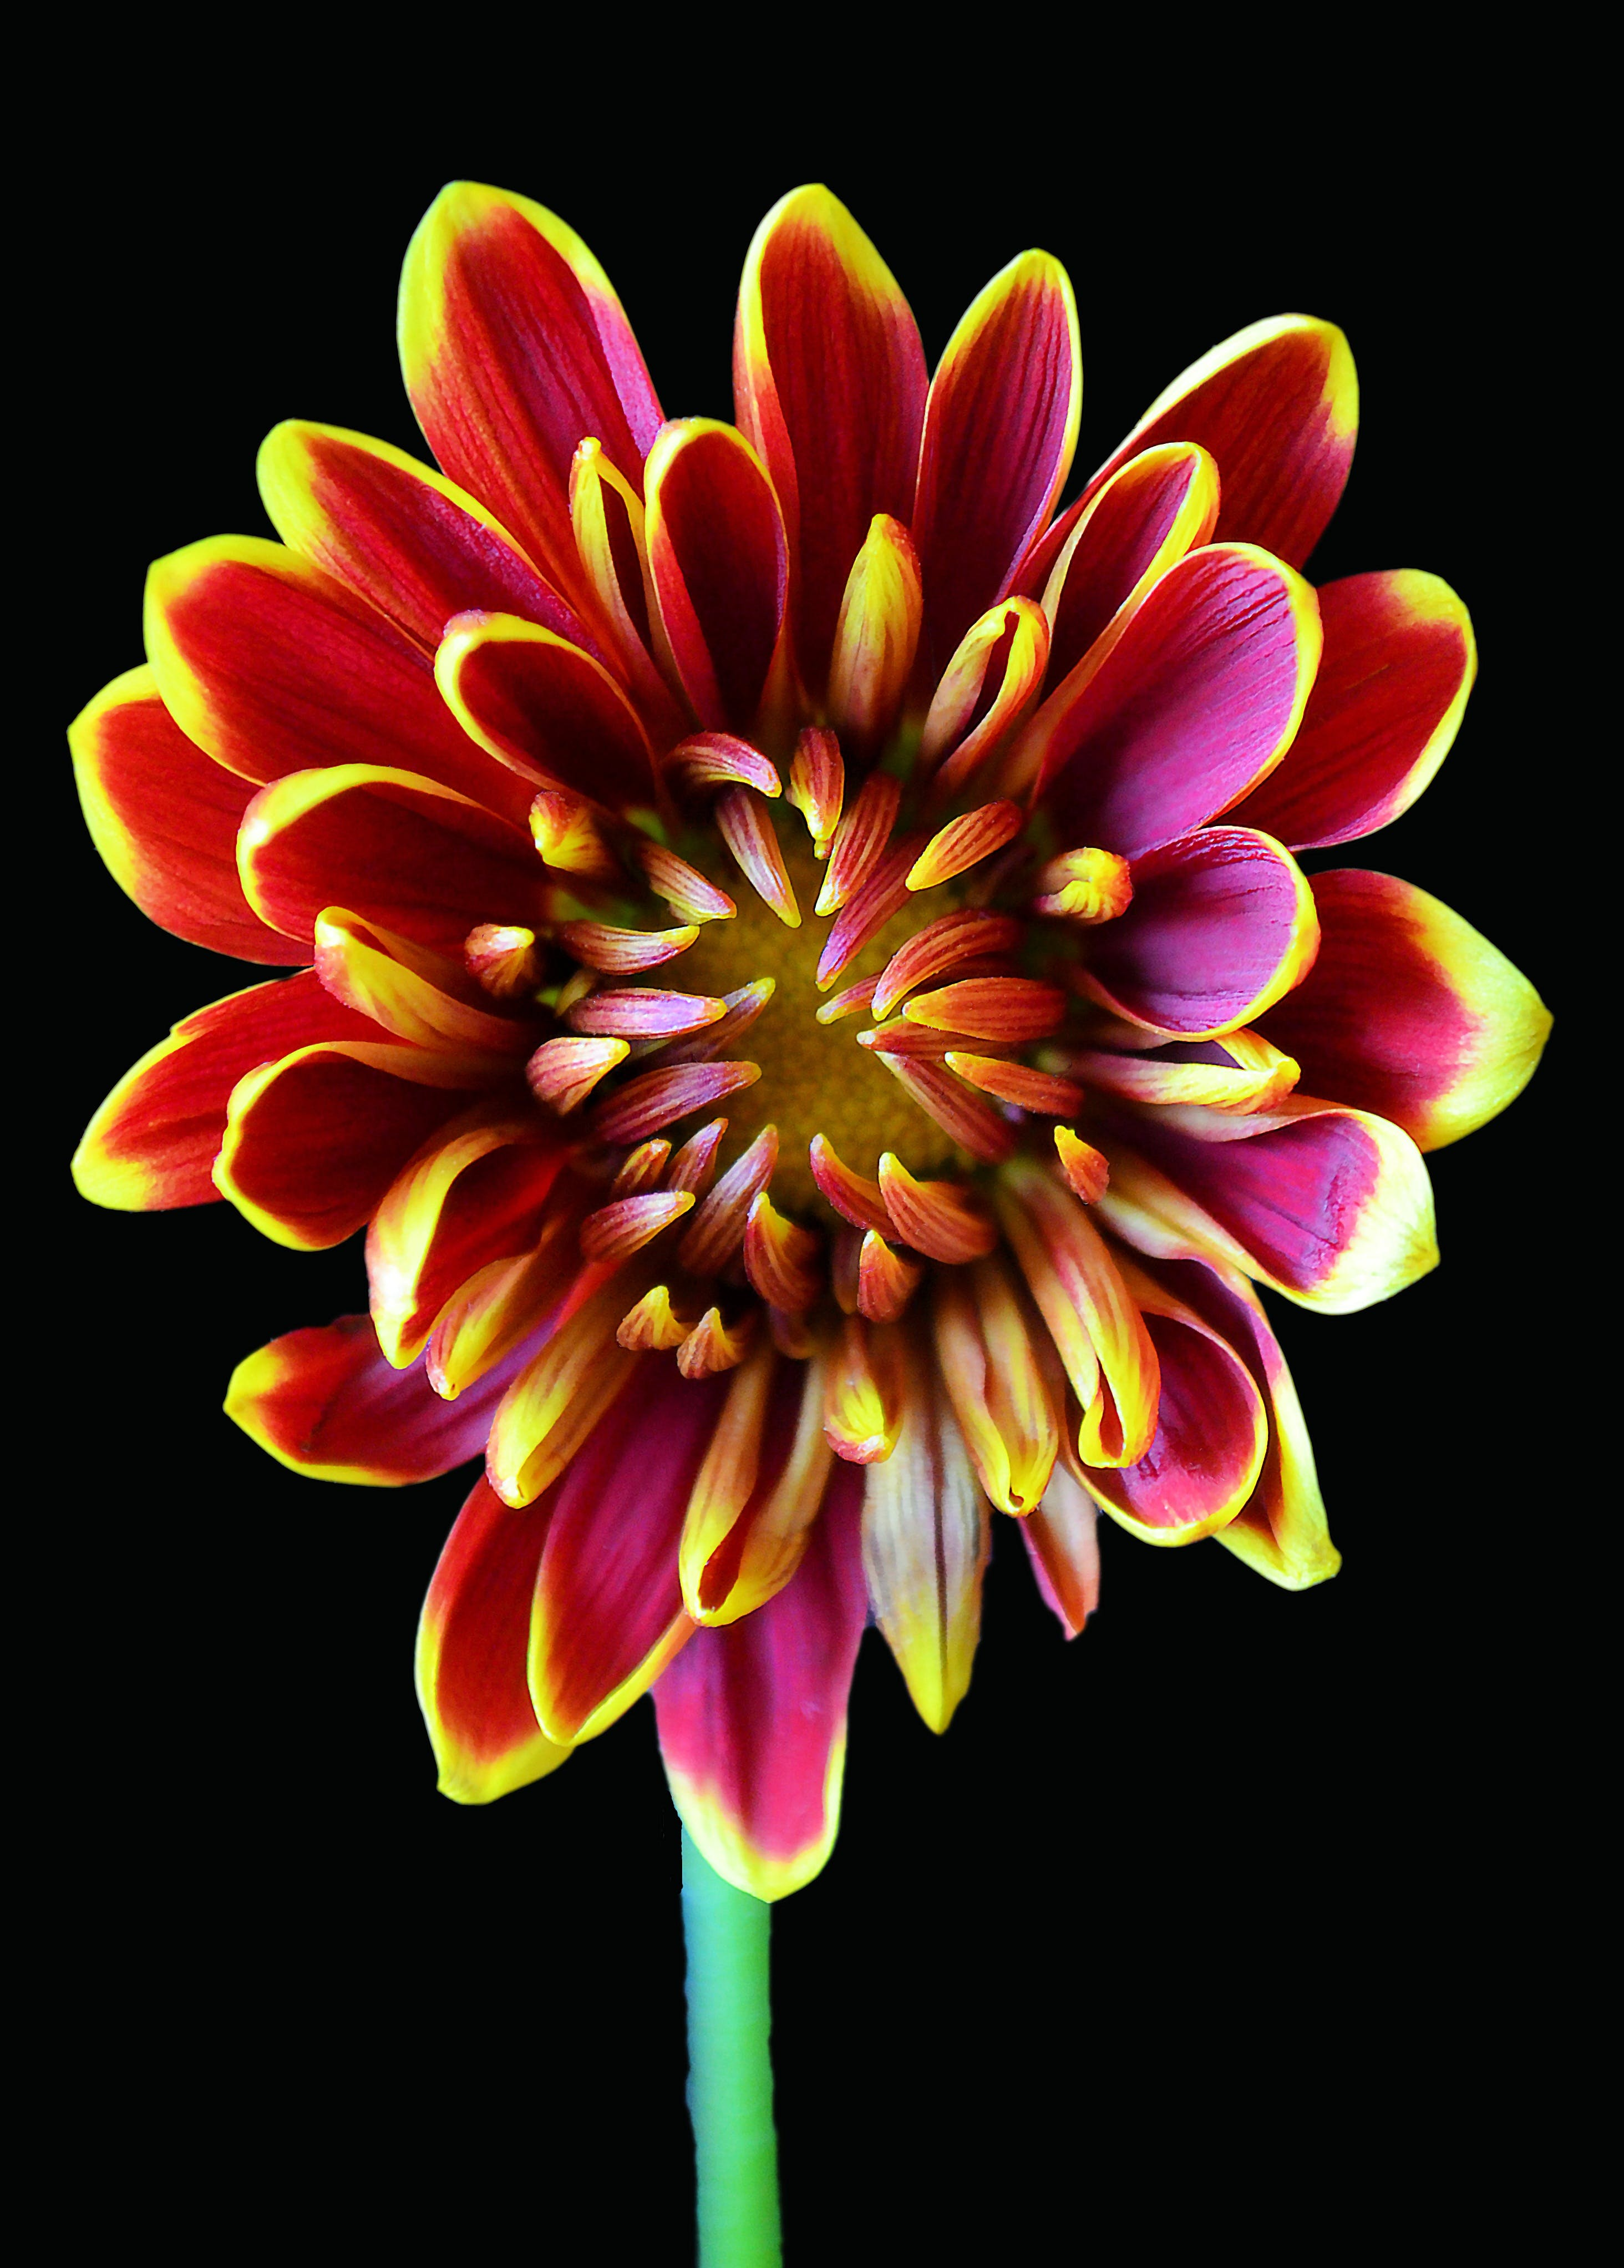 Red-and-yellow Petaled Flower